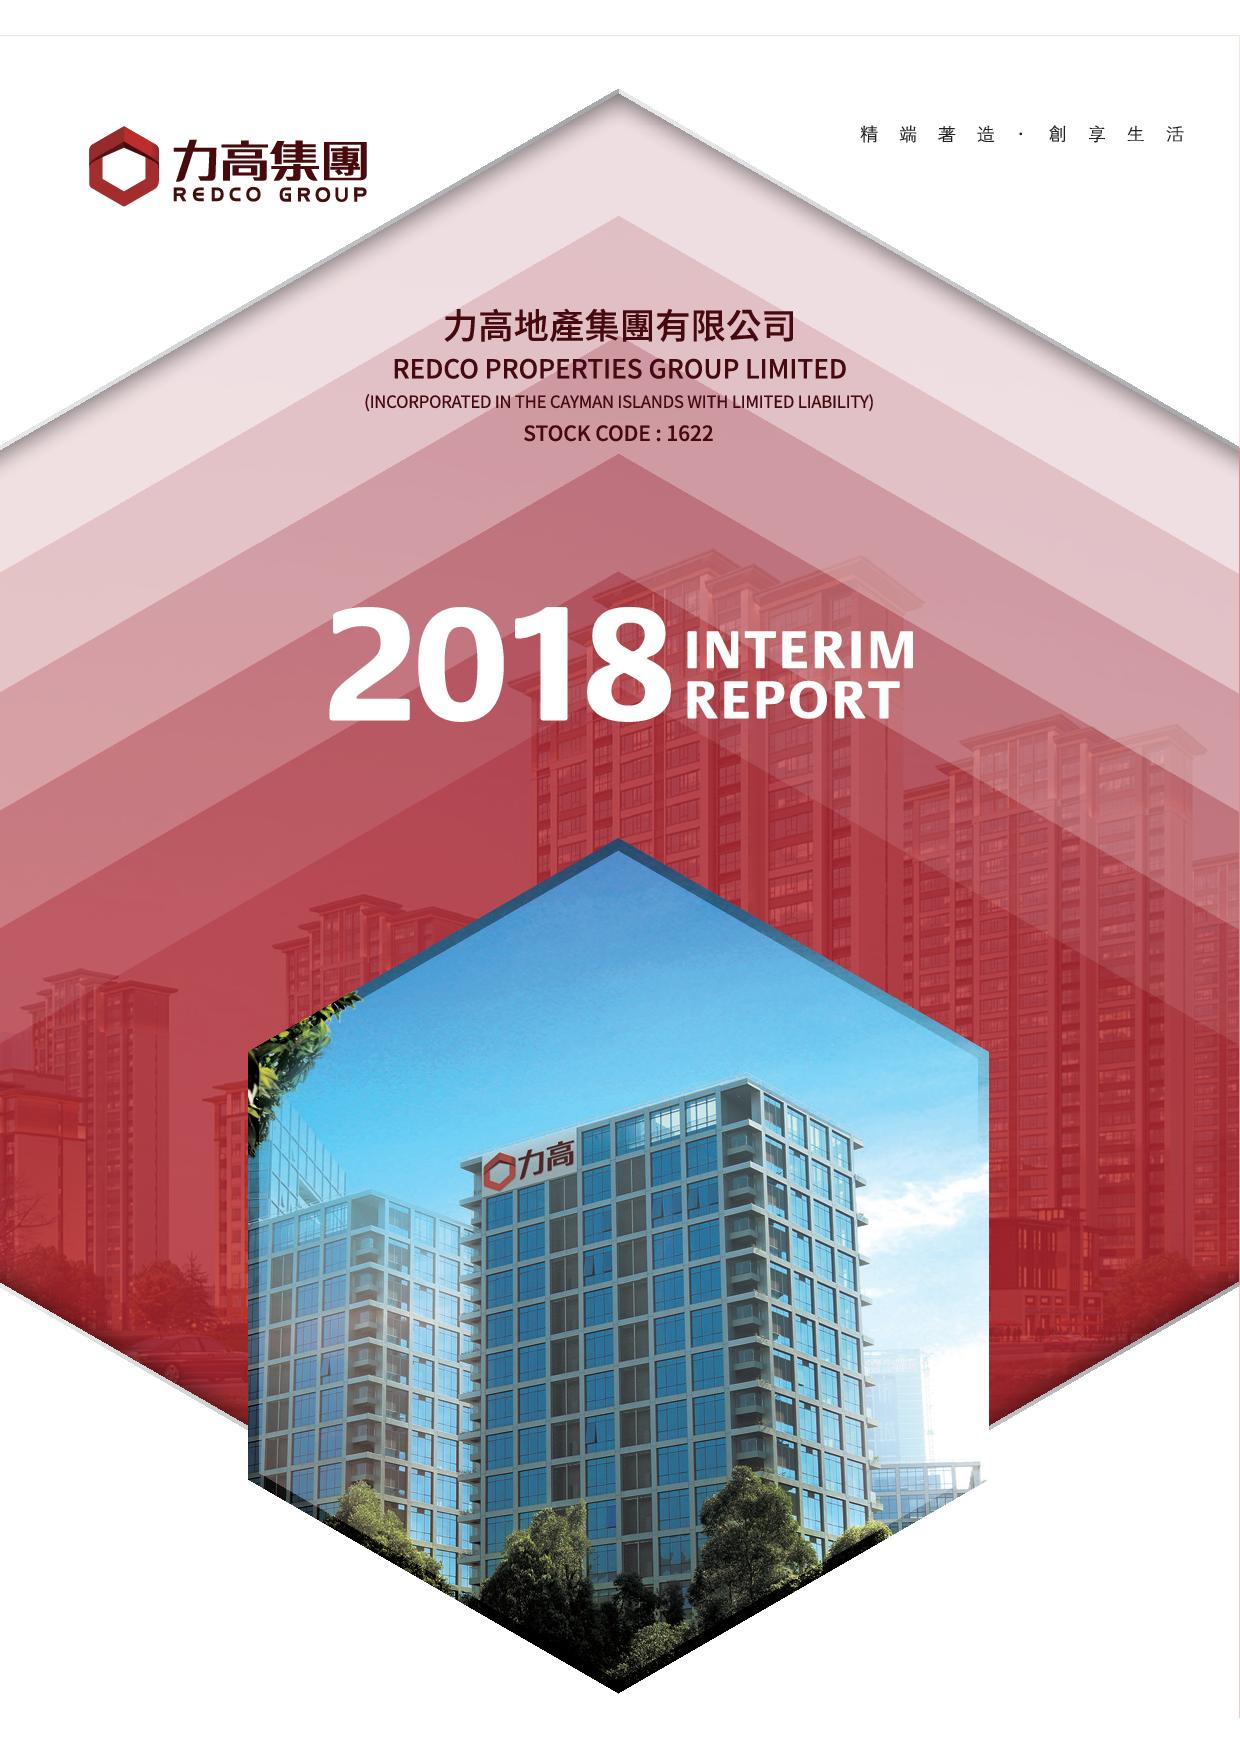 Redco Properties Group Limited